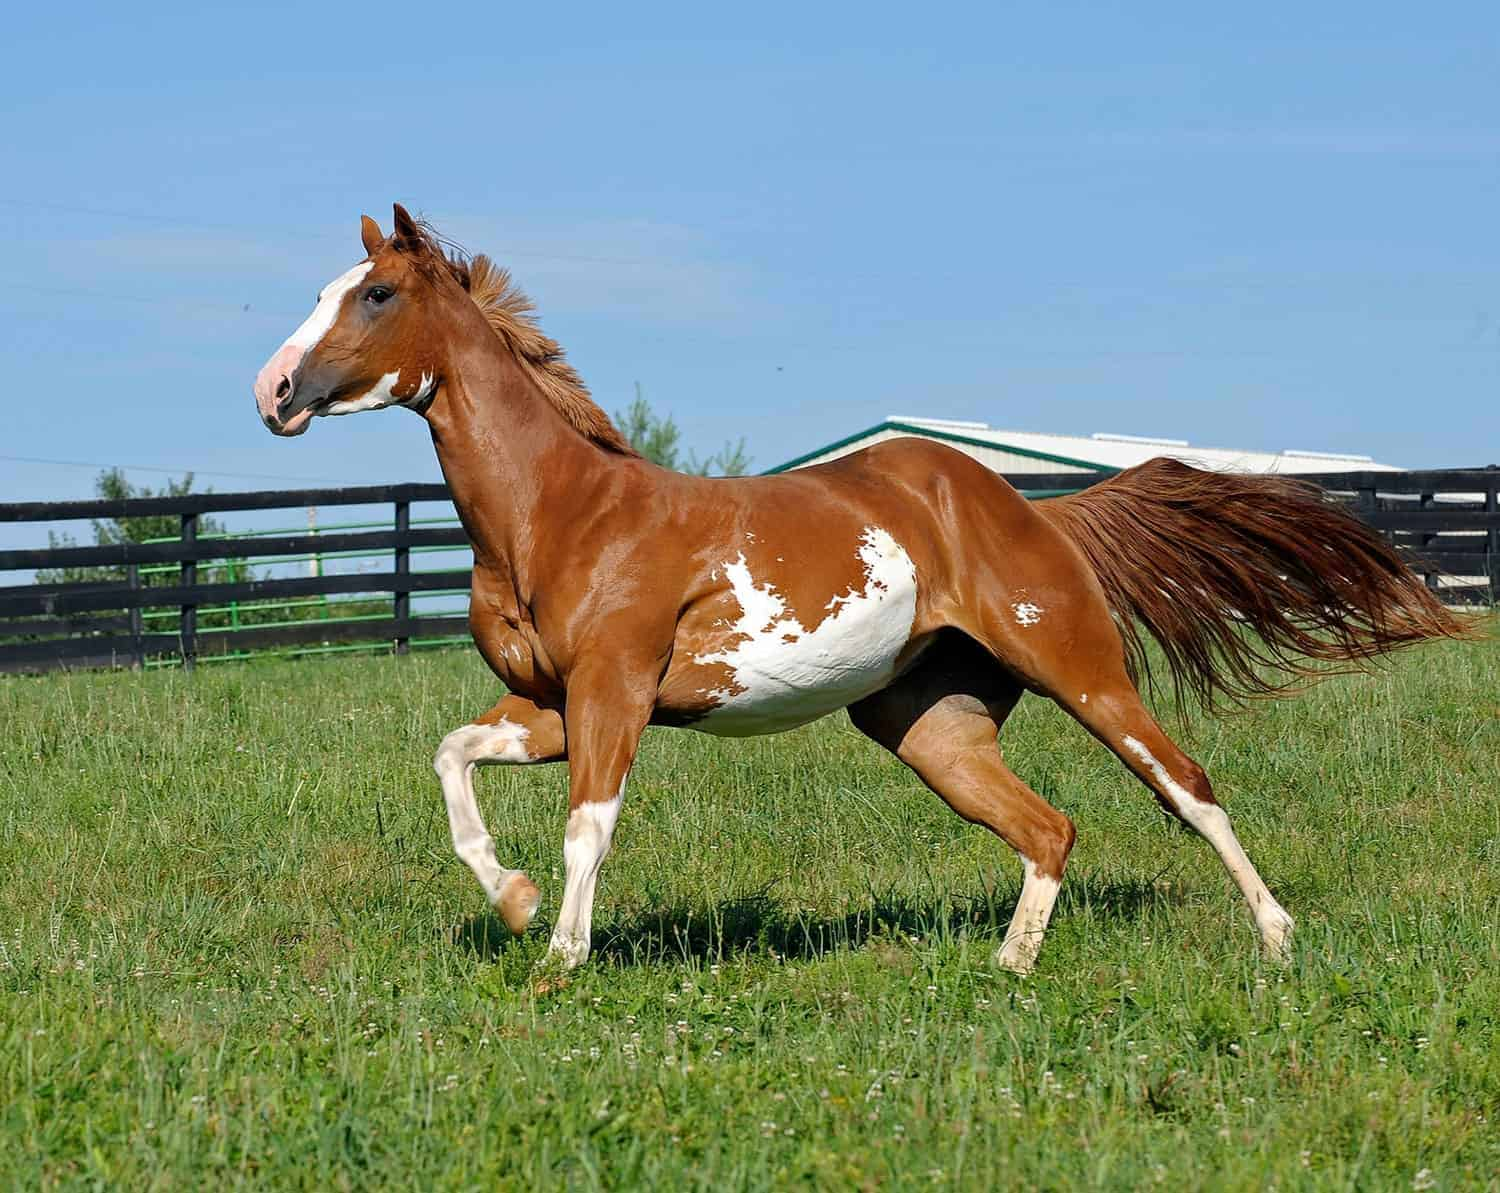 Horses: Five Important Facts About Them